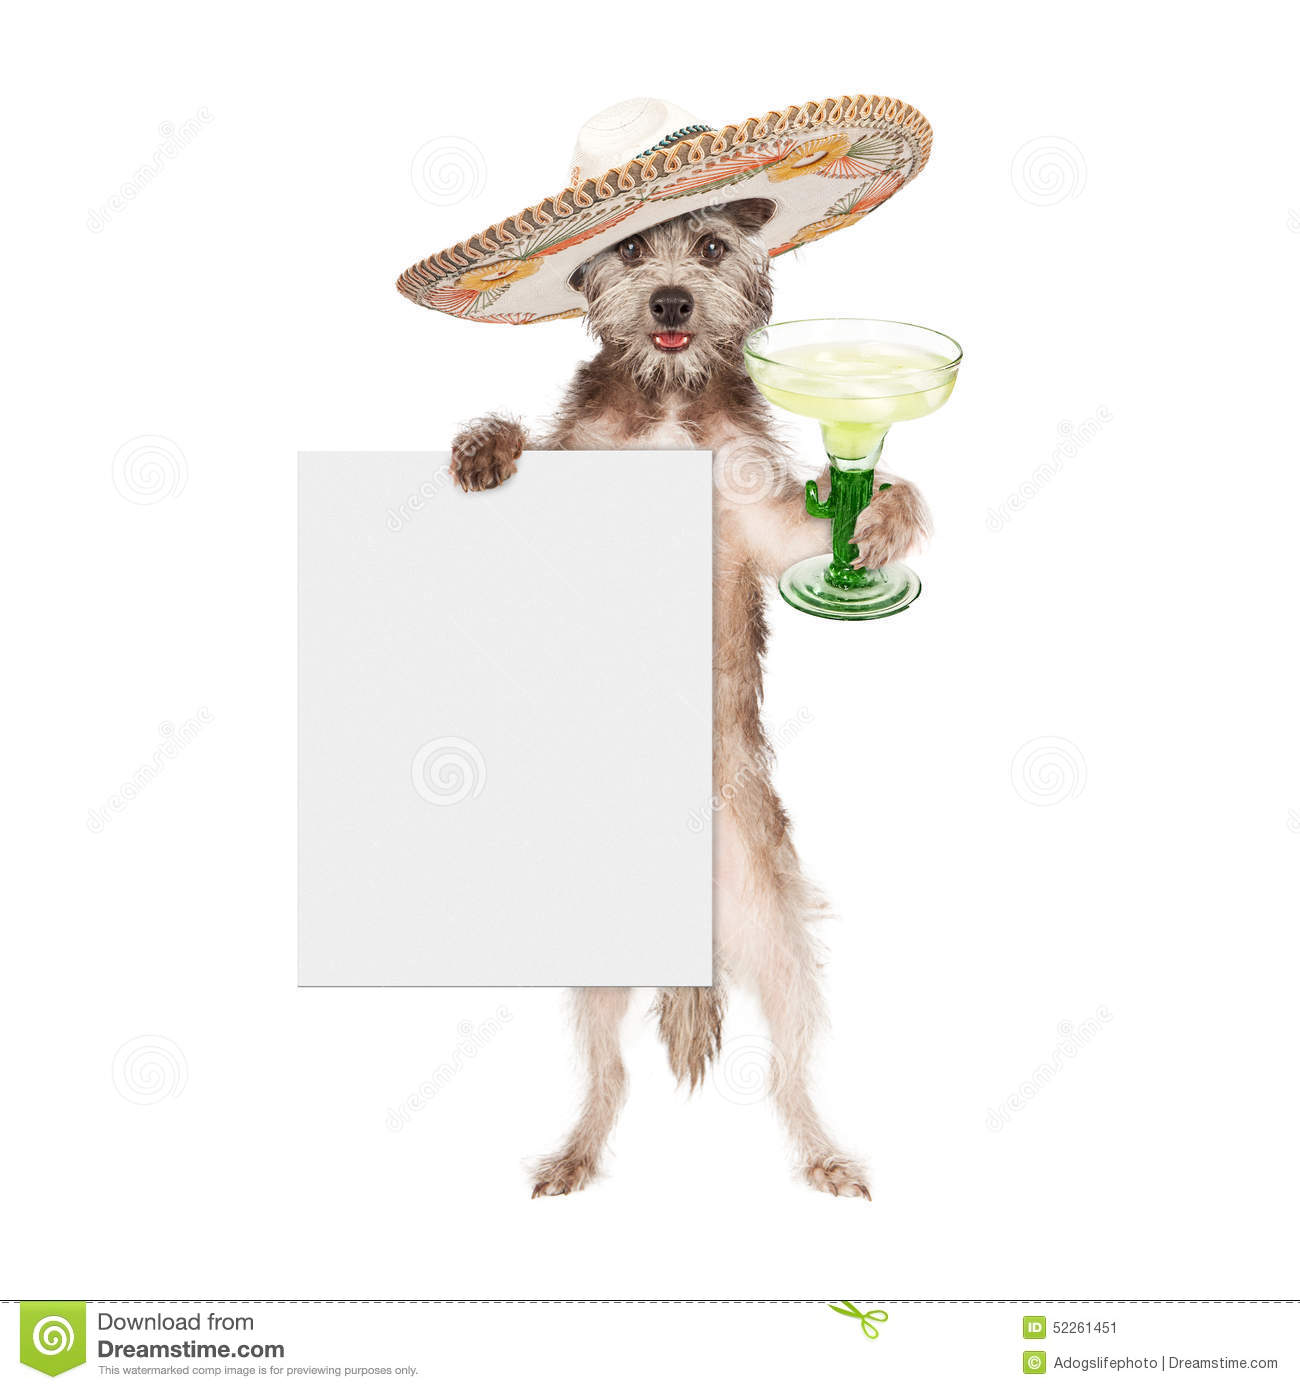 how to wear a sombrero correctly